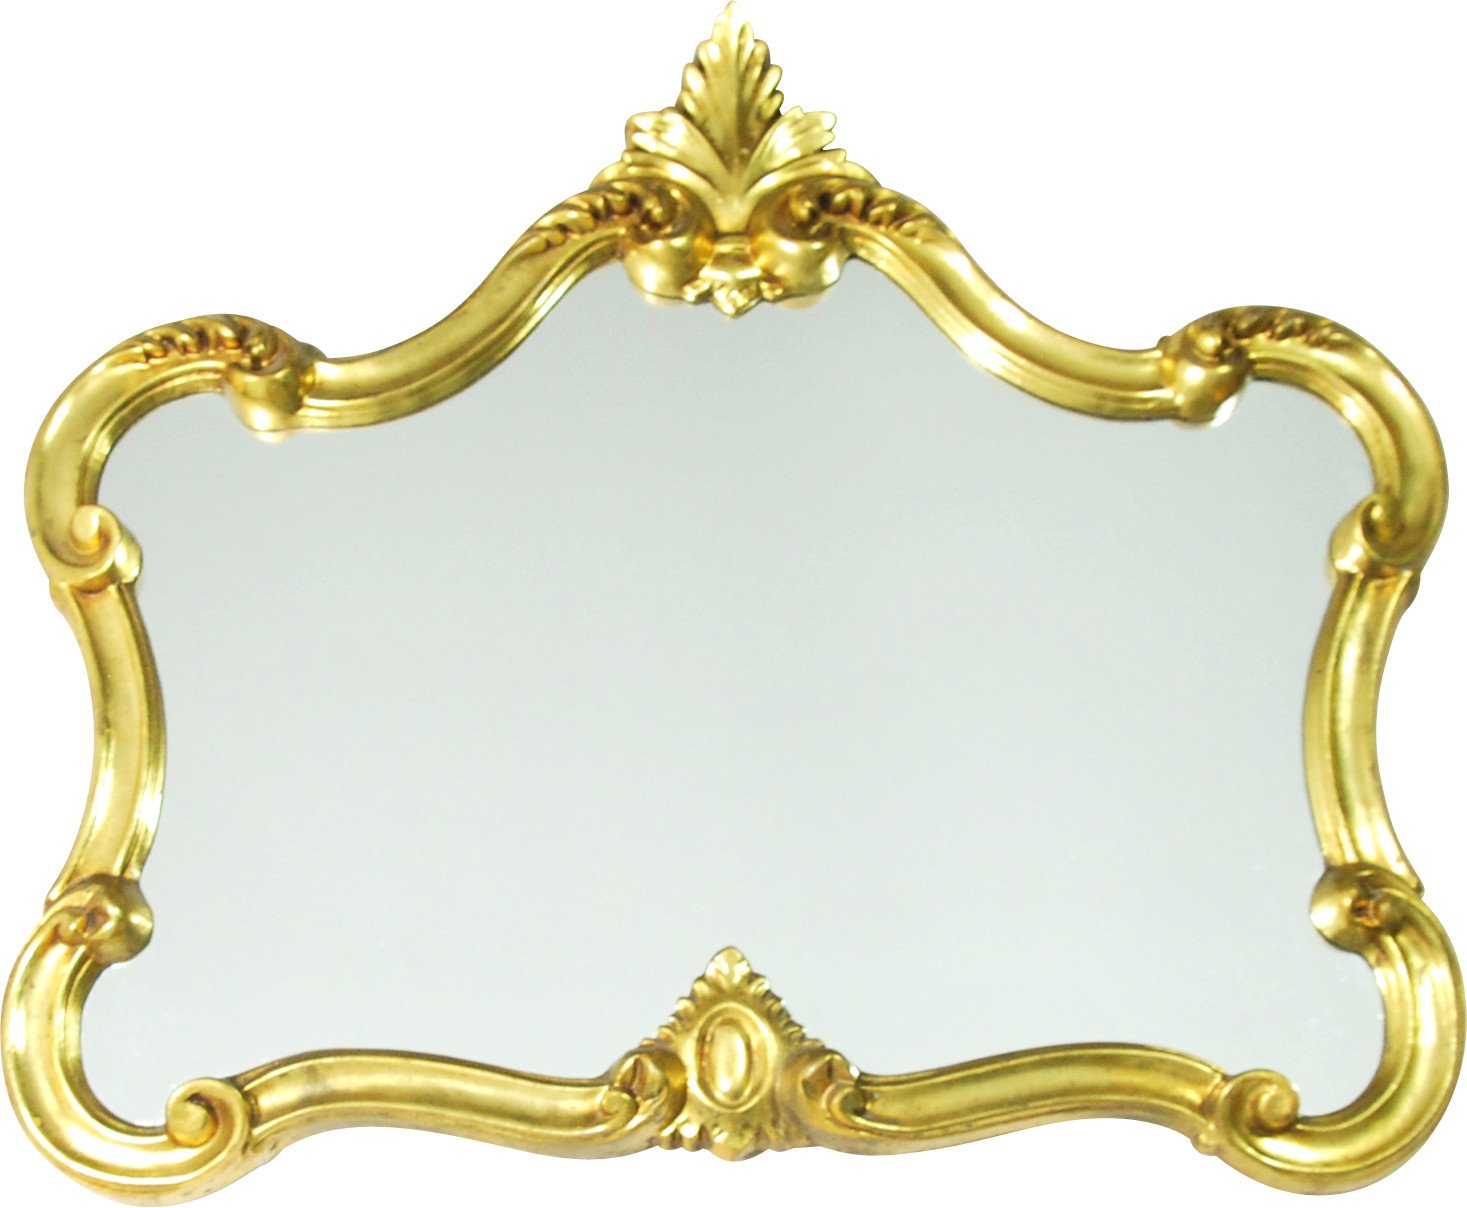 Mirror in Golden Frame, Domiko, Germany, 1970s.